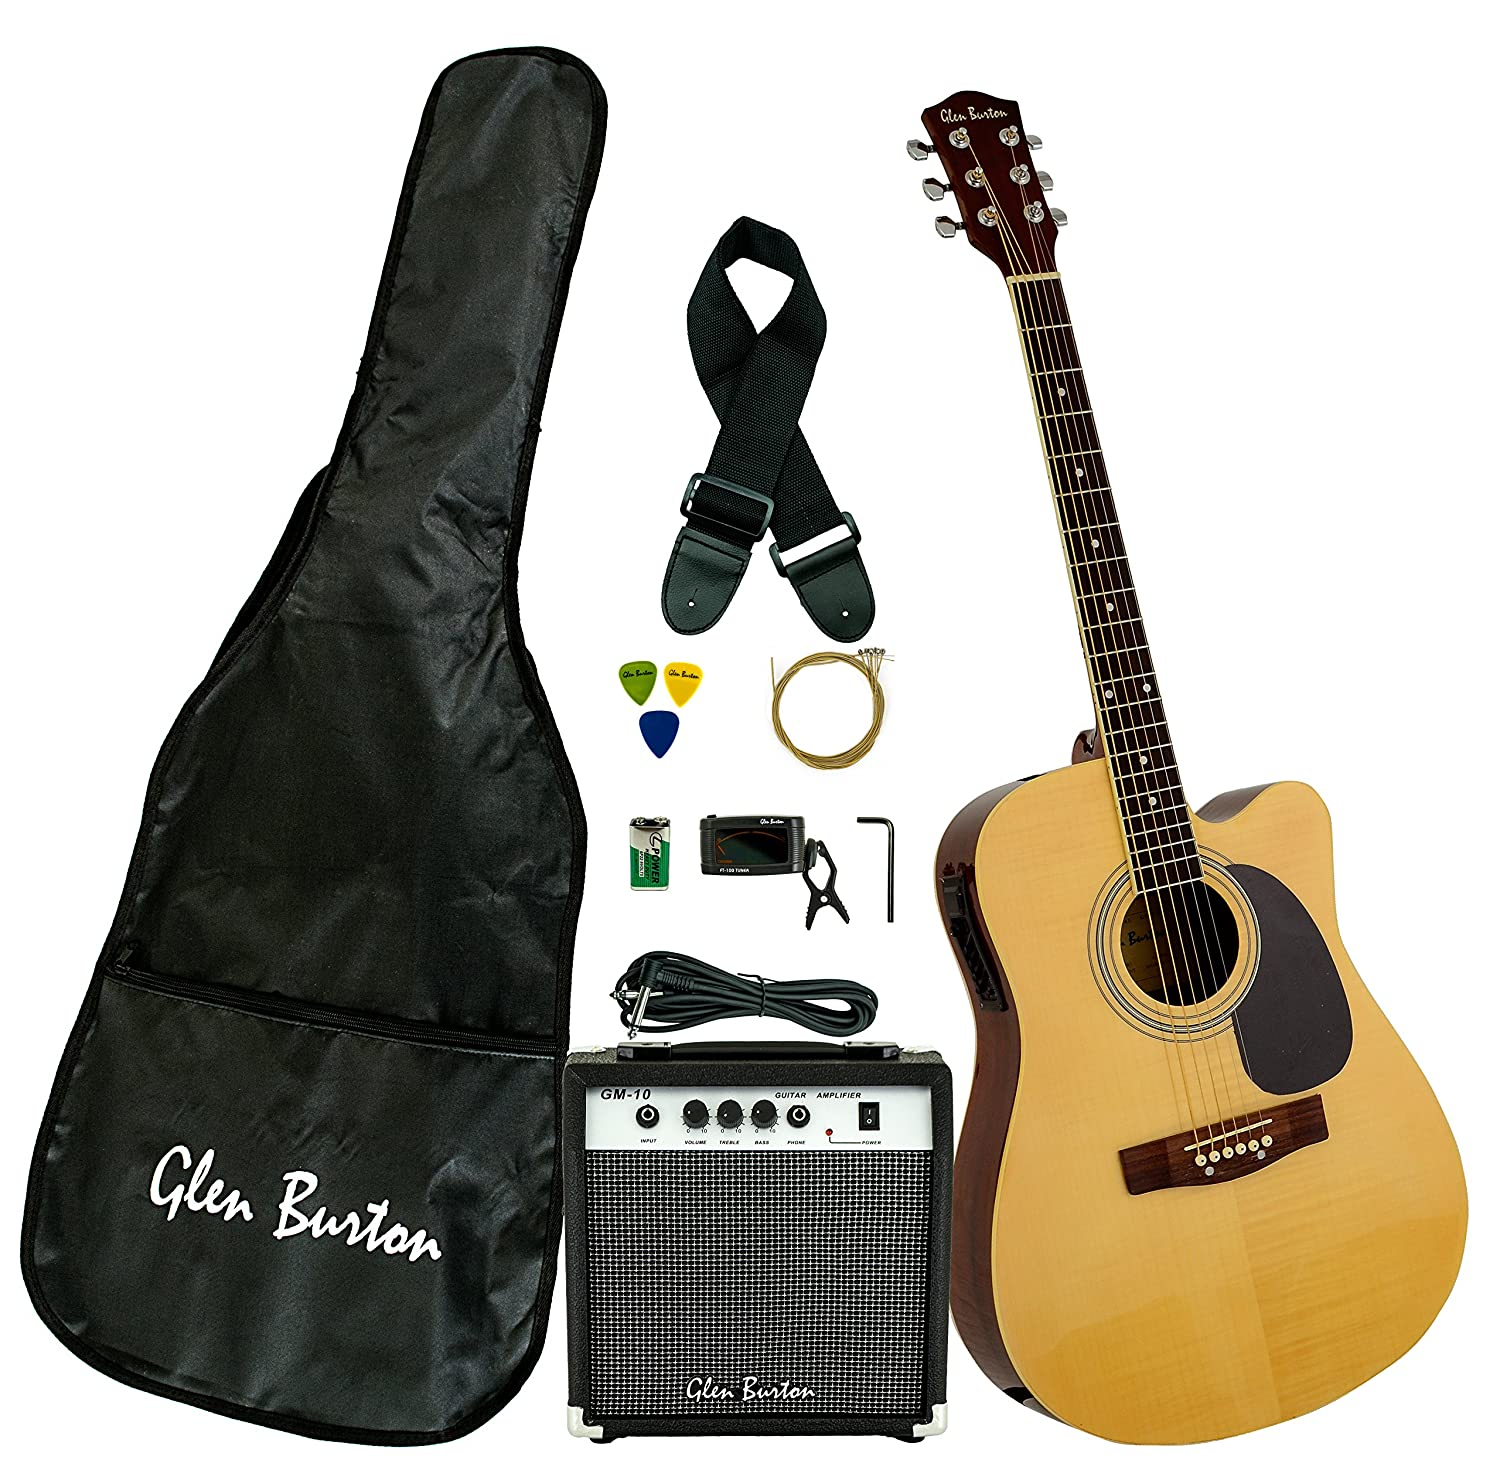 Glen Burton GA204BCO-BK Acoustic Electric Cutaway Guitar, Black Bridgecraft